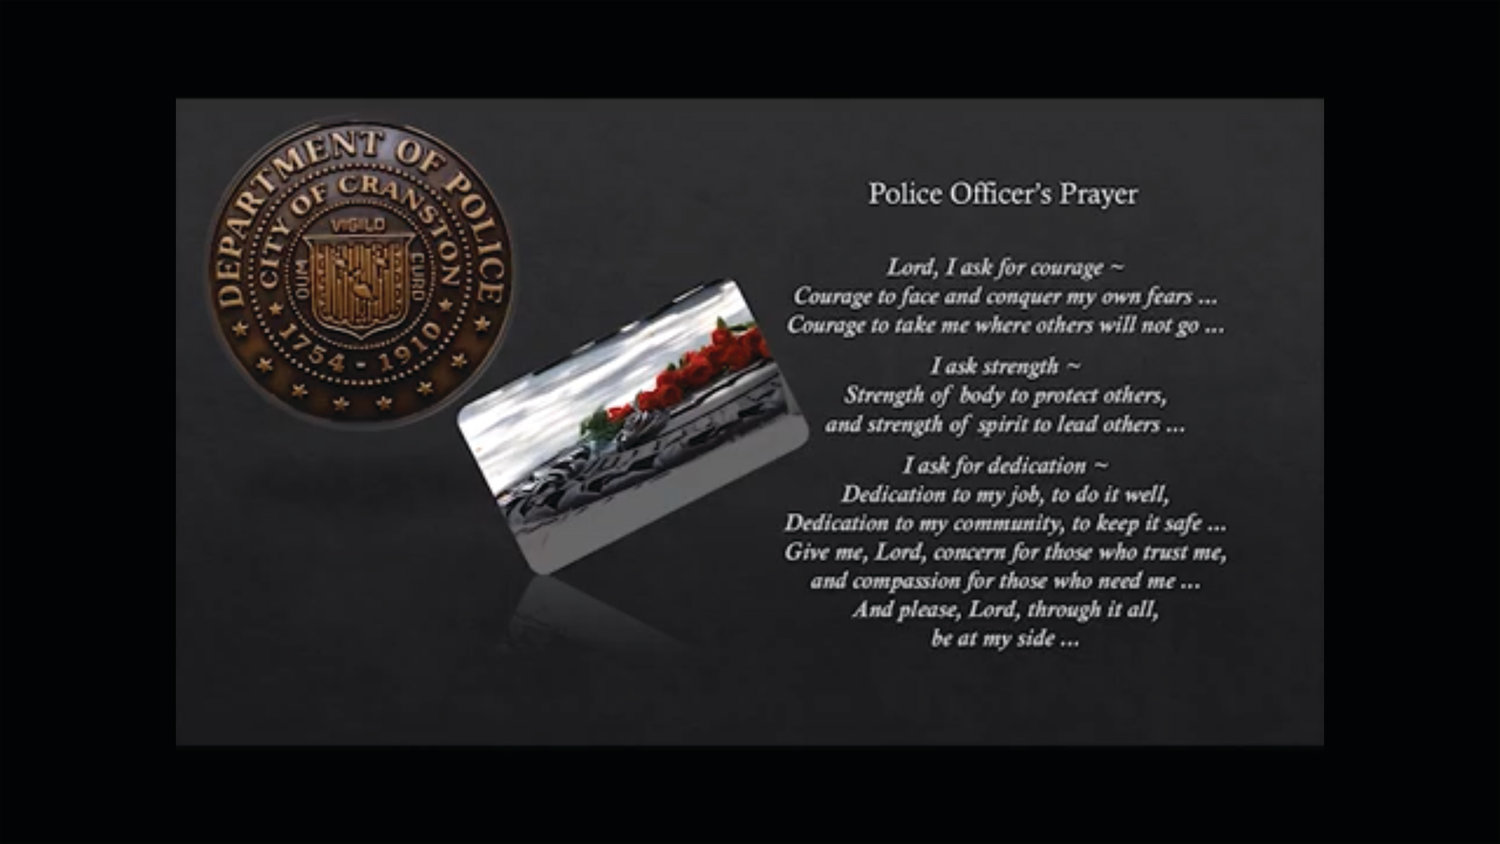 A PRAYER: The virtual ceremony includes the words of the Police Officer's